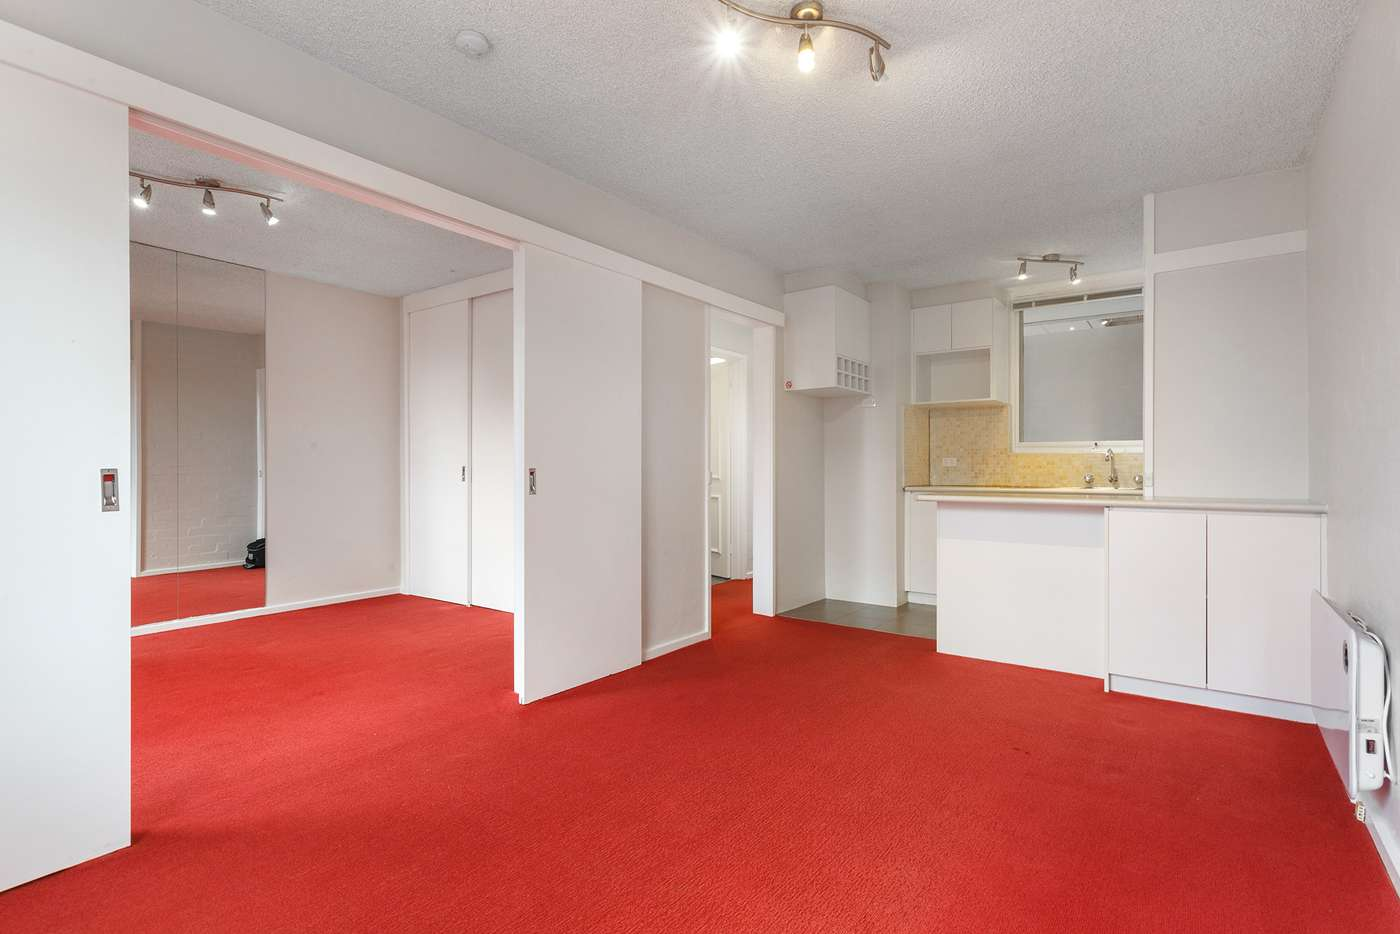 Fifth view of Homely apartment listing, 17/9-11 Barnsbury Road, South Yarra VIC 3141